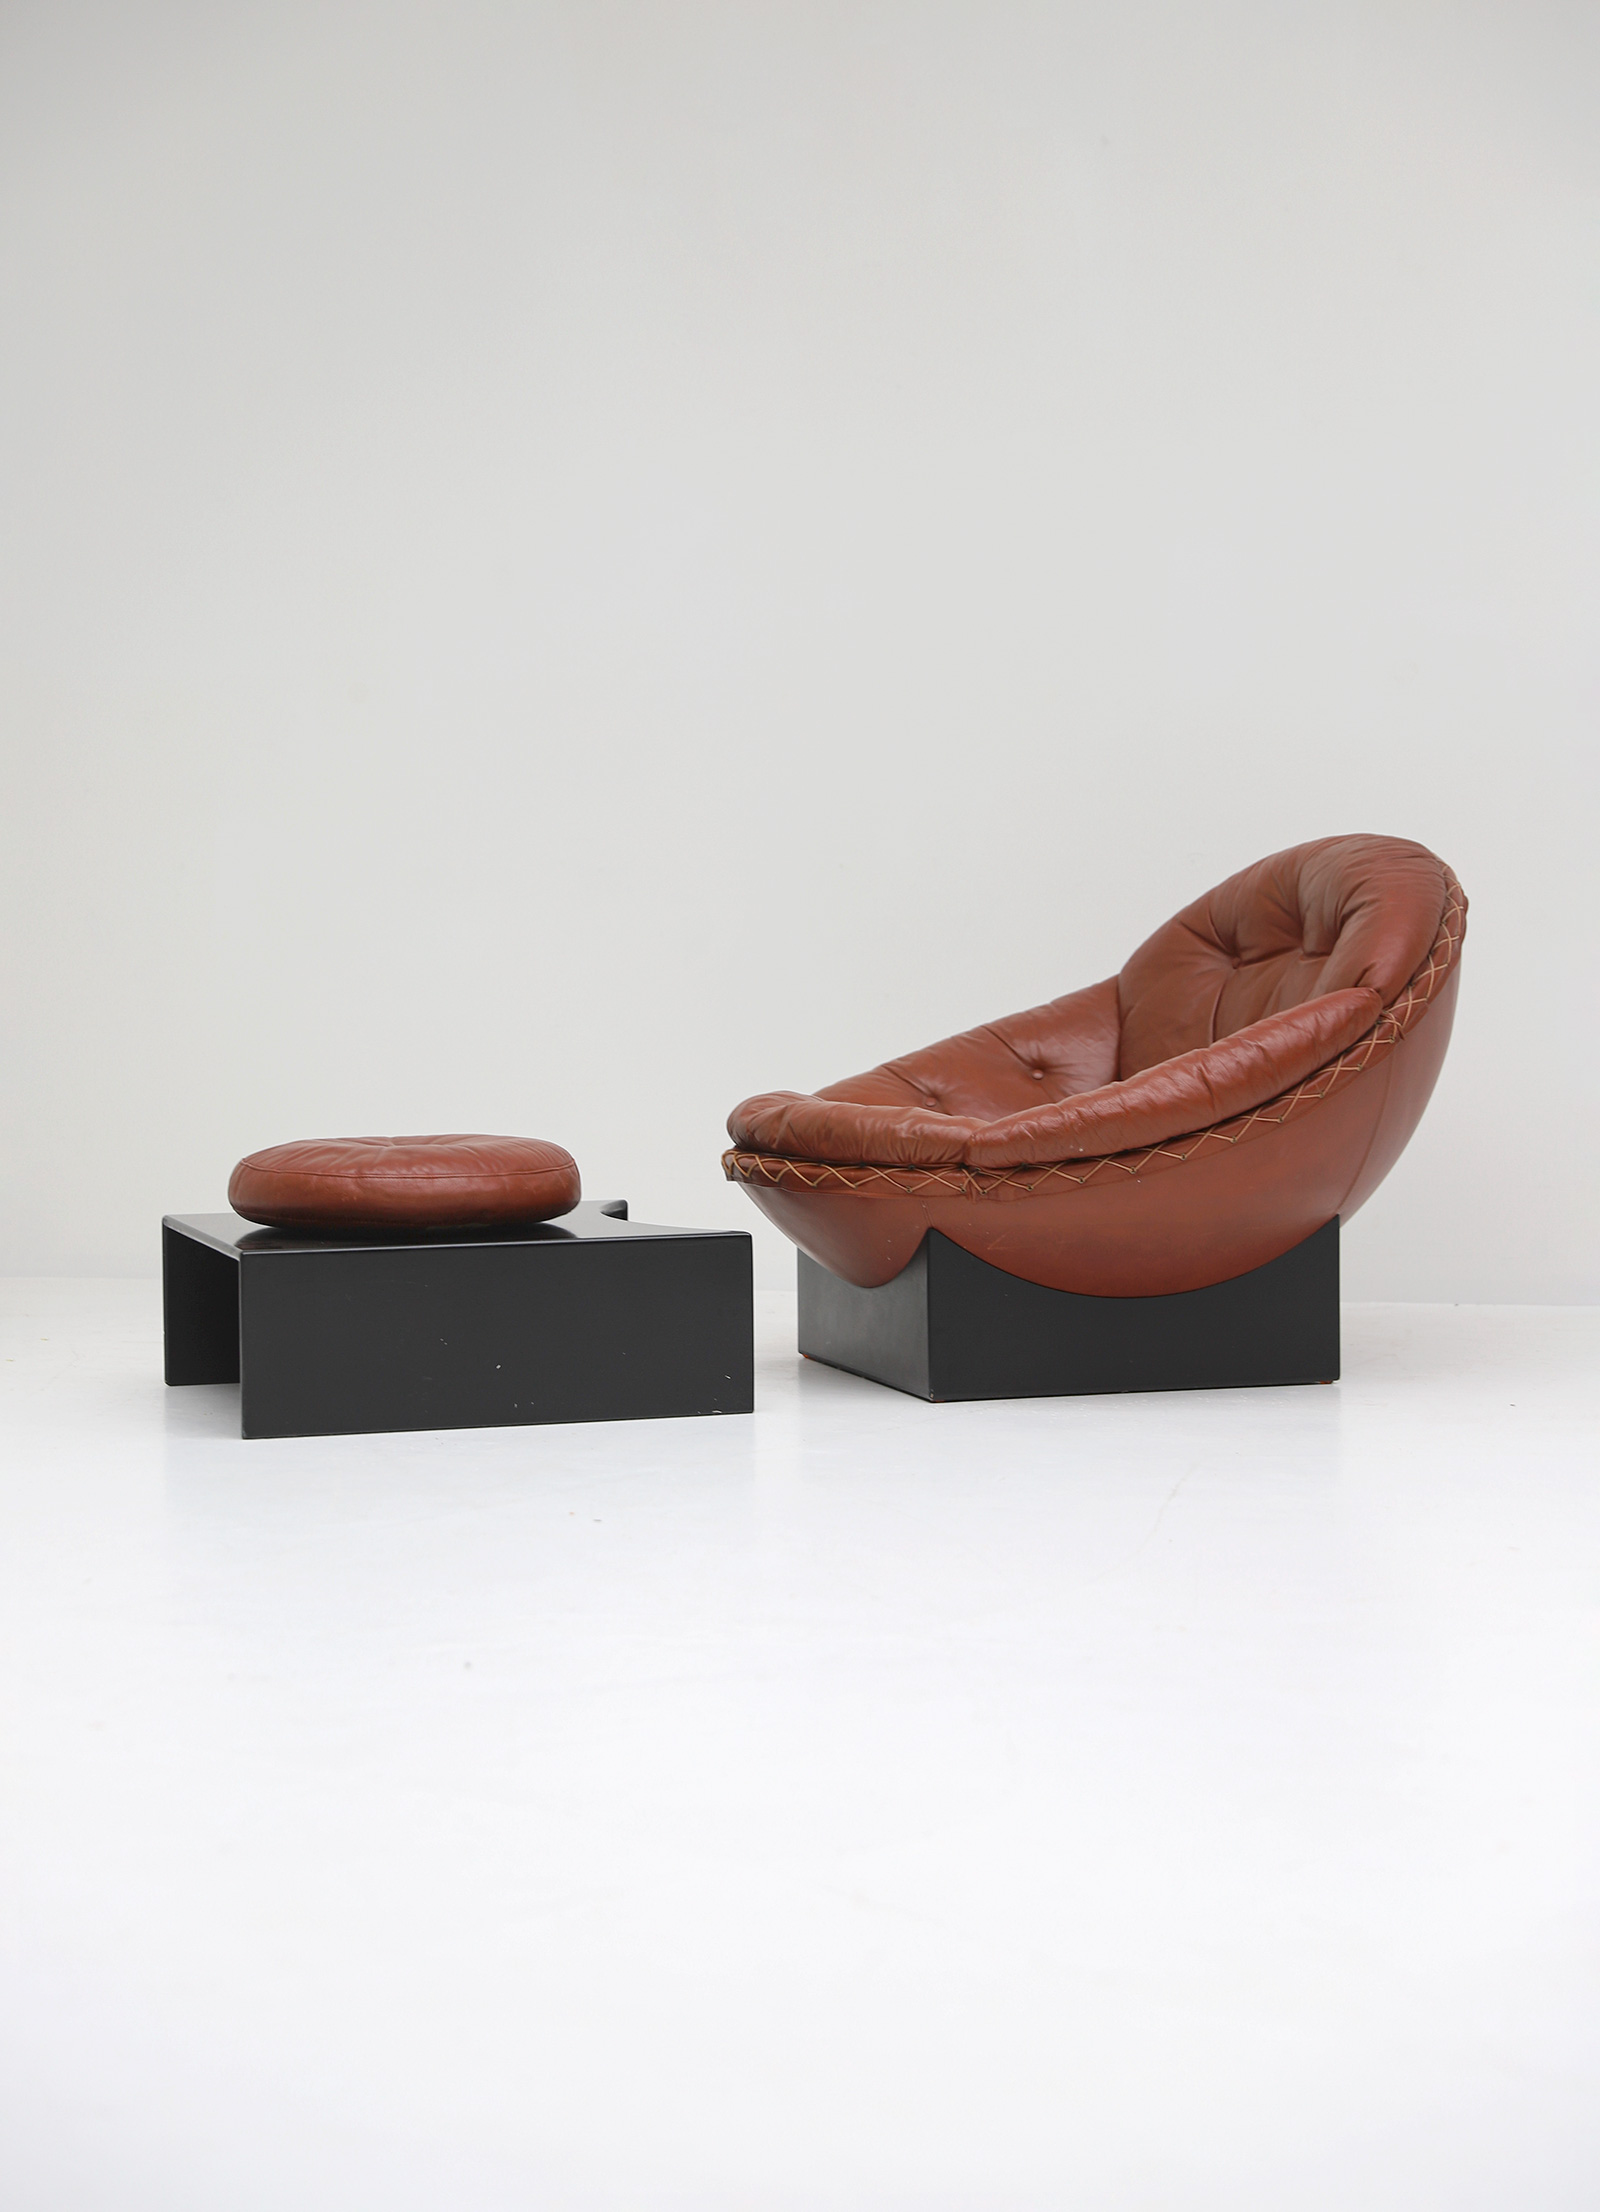 Leather Lounge Chairs by Illum Wikkelso for Ryesberg 1970simage 13